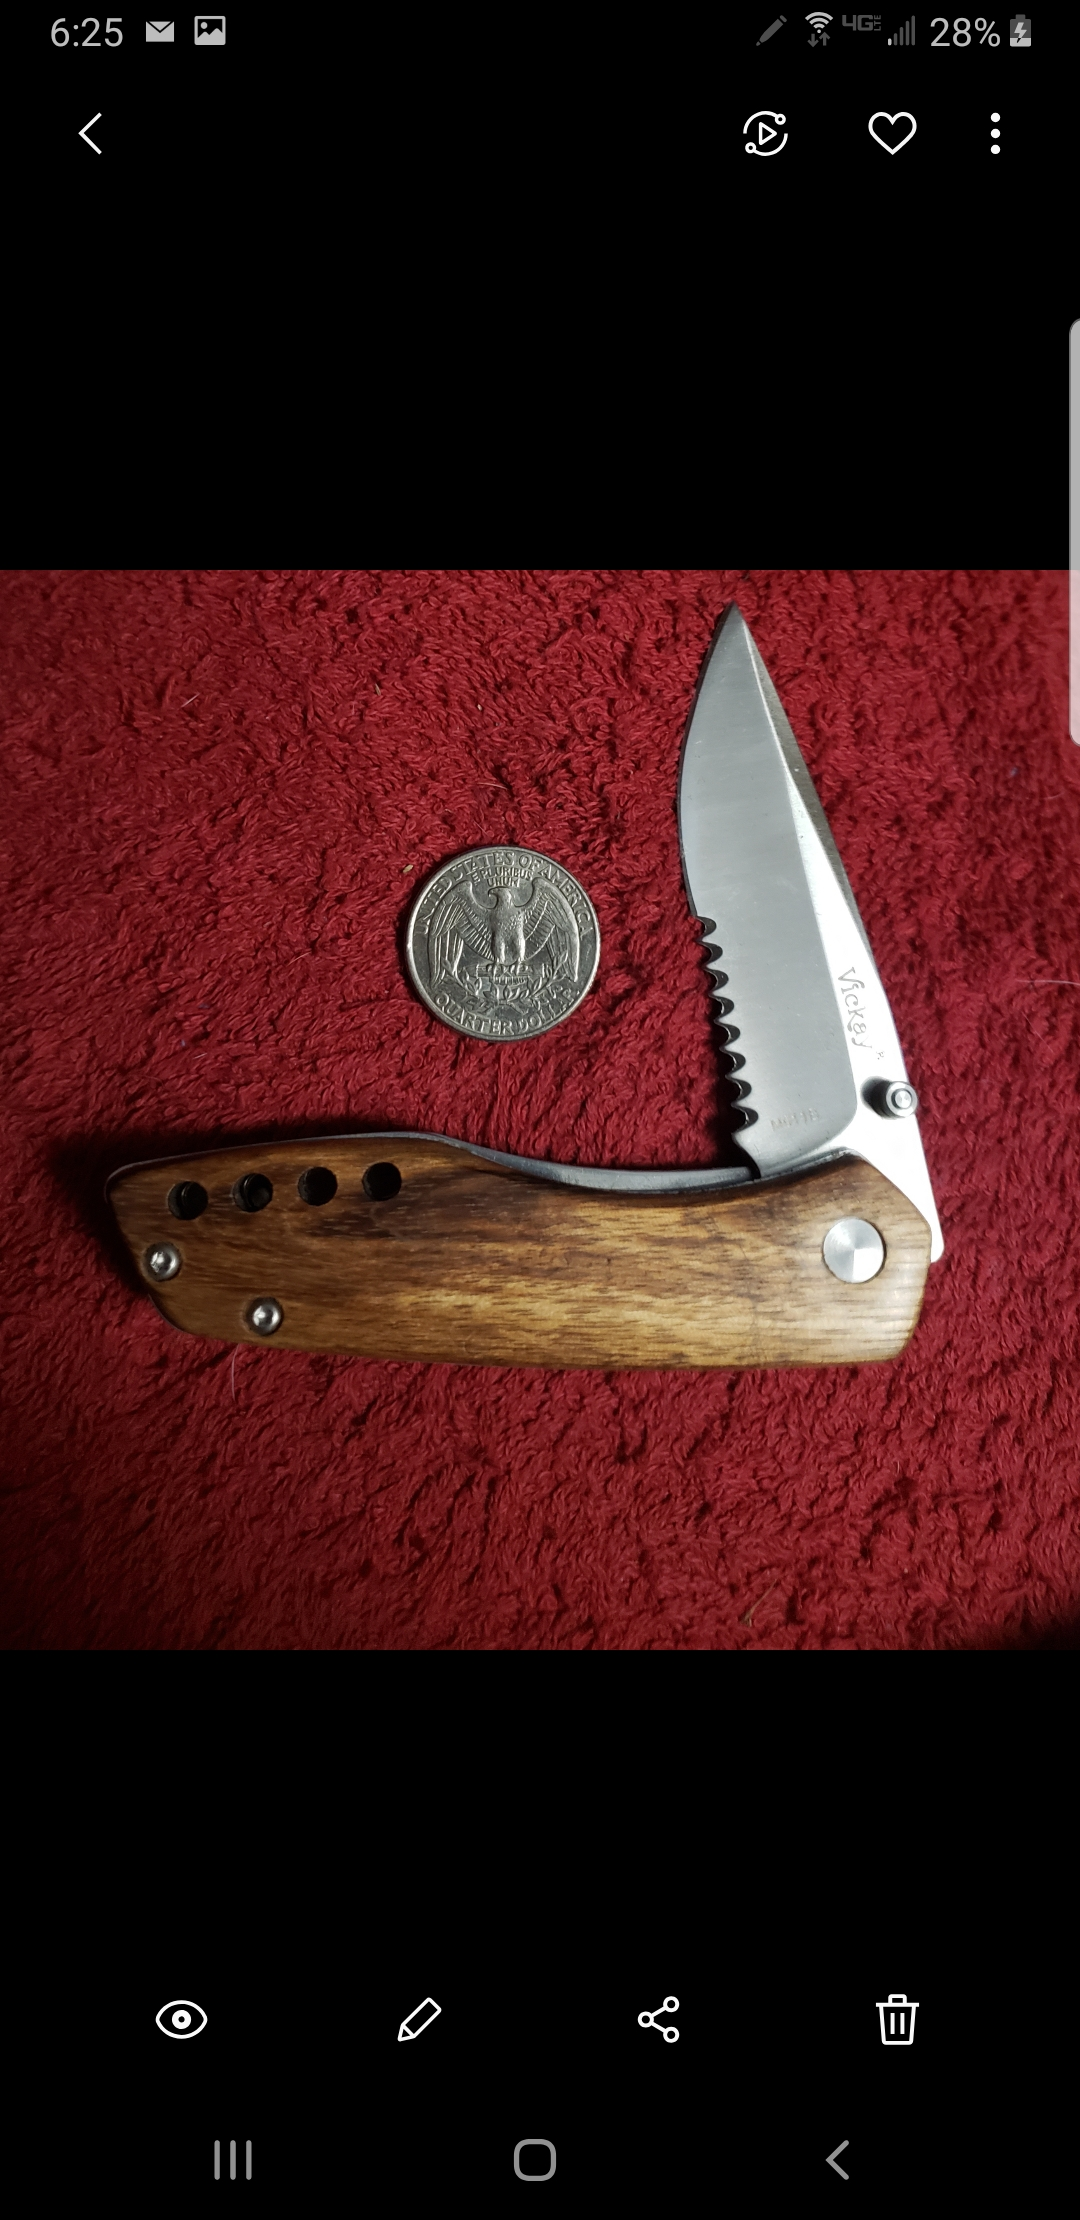 Just the right size with quality blade